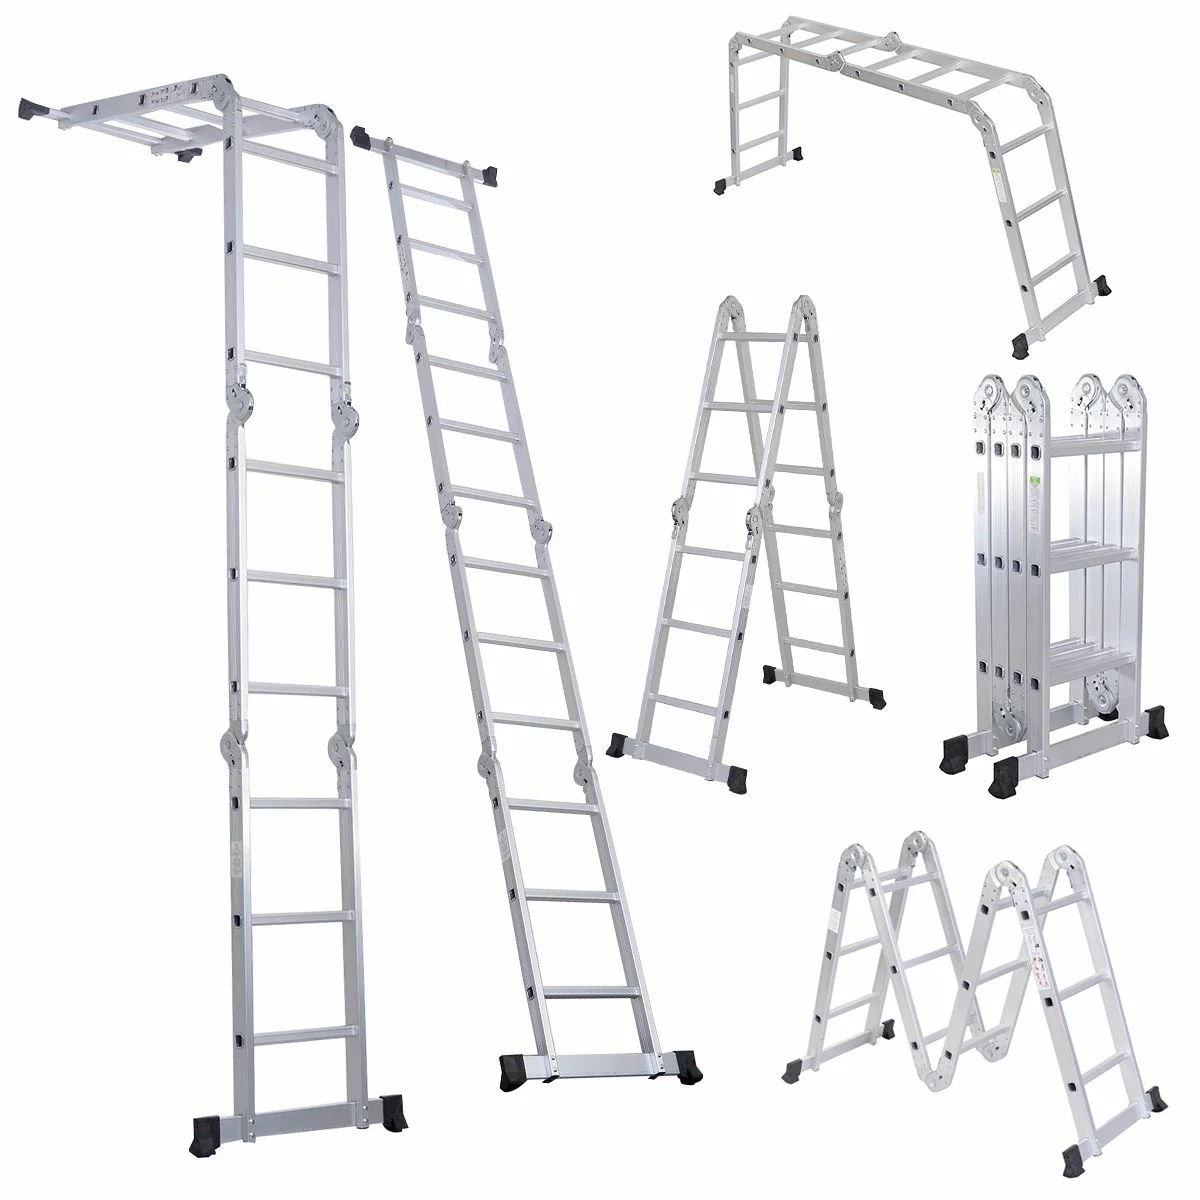 Costway 12 5ft En131 330lb Multi Purpose Step Platform